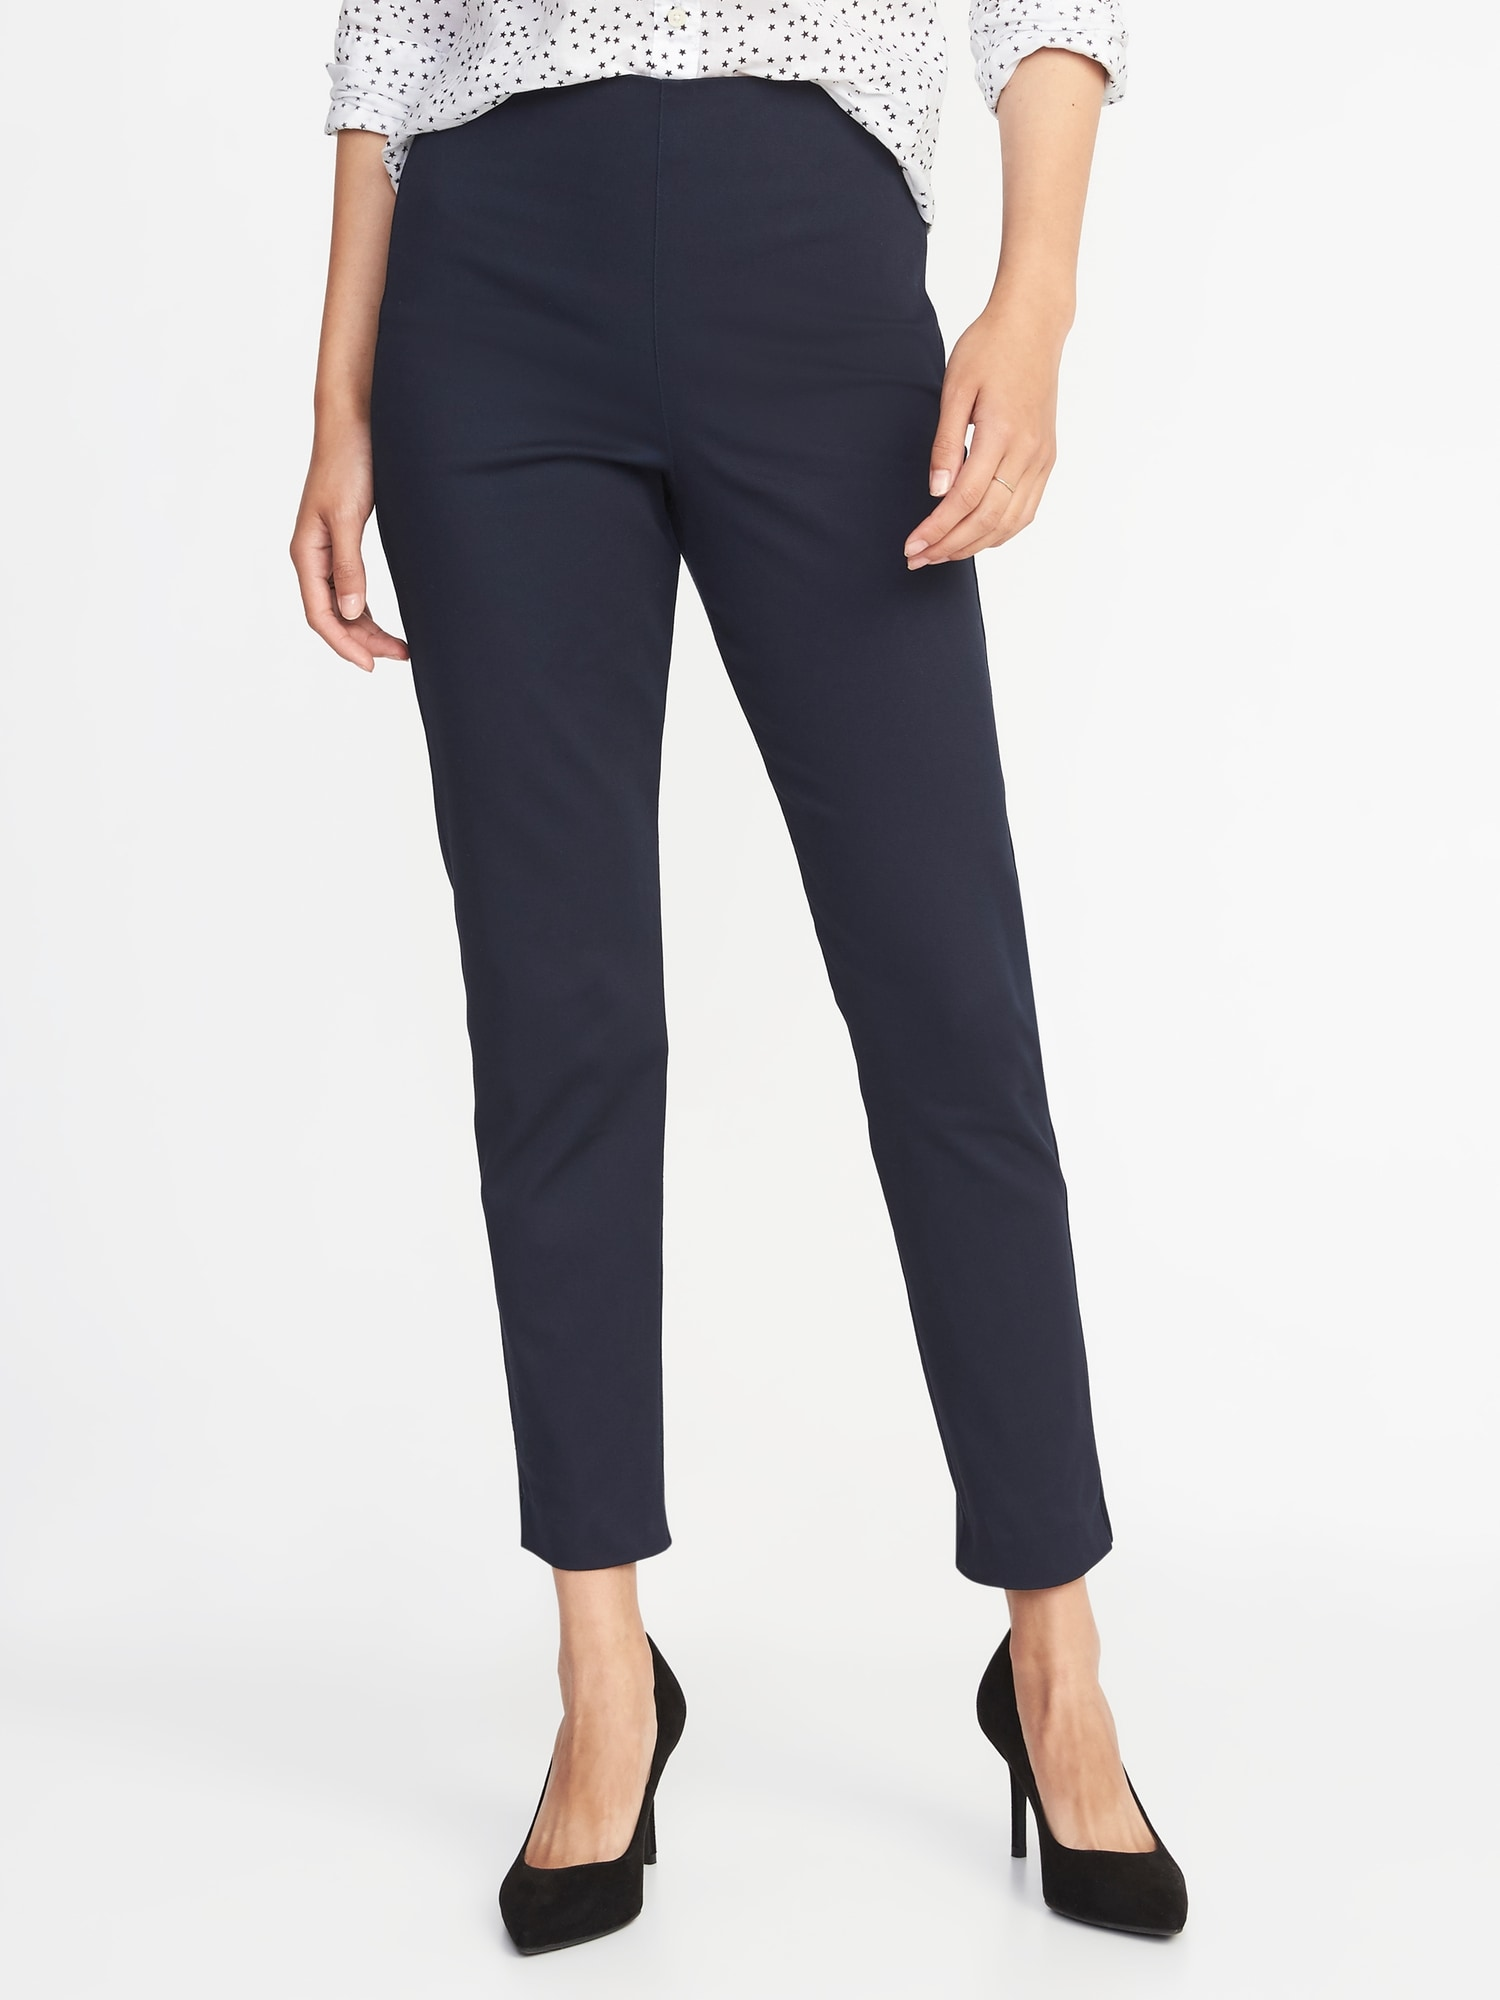 *Hot Deal* High-Waisted Super Skinny Ankle Pants for Women